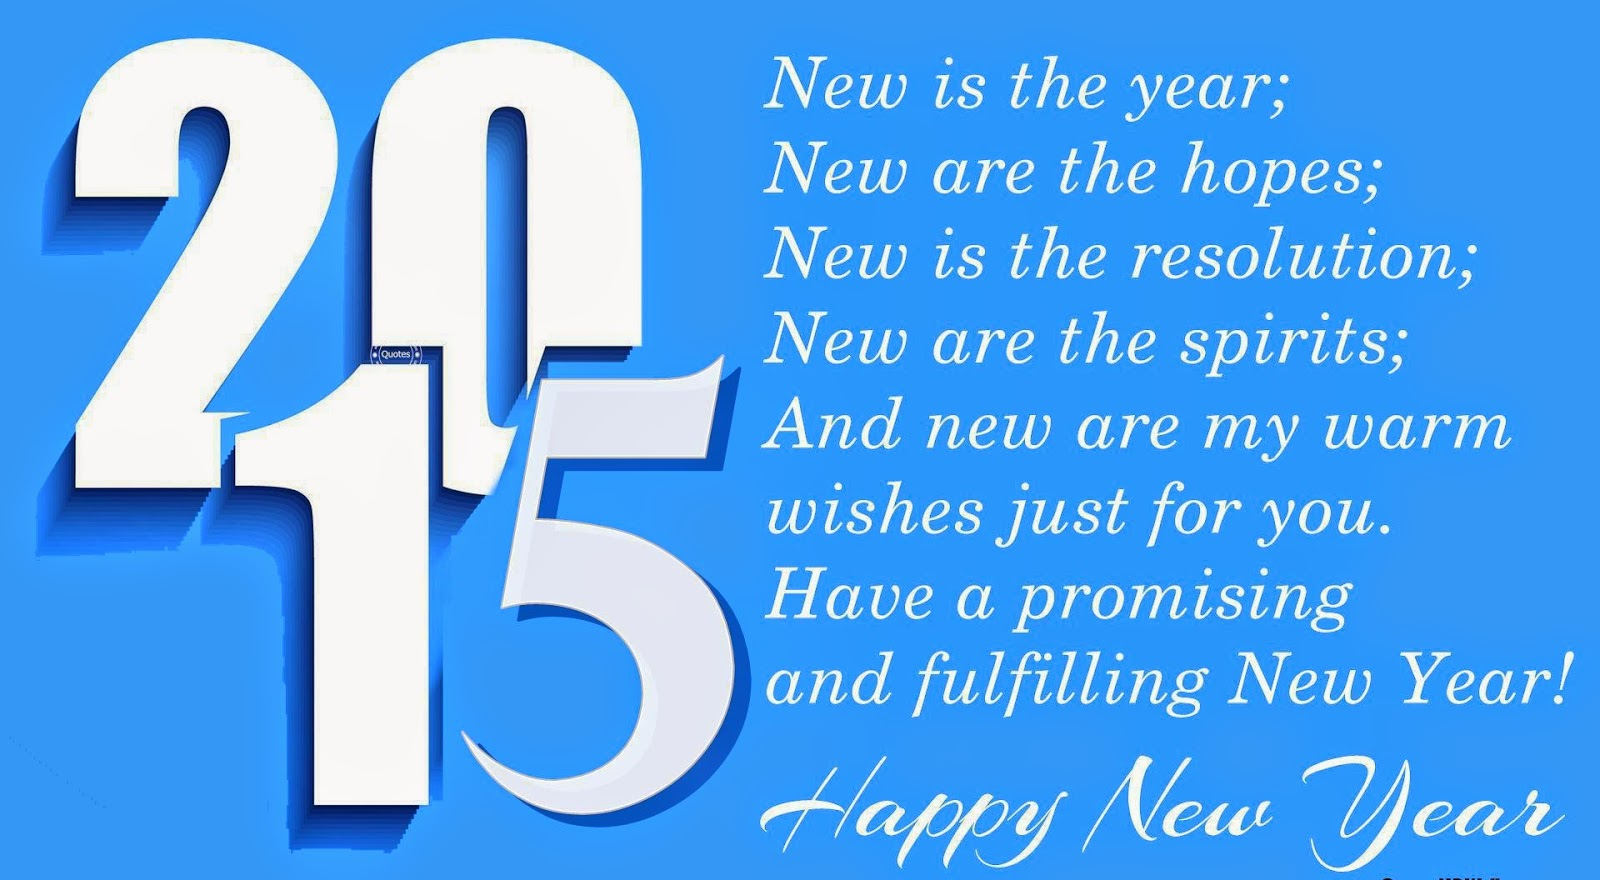 Happy New Year Quotes And Greetings For 2015 To Share On Whatsapp